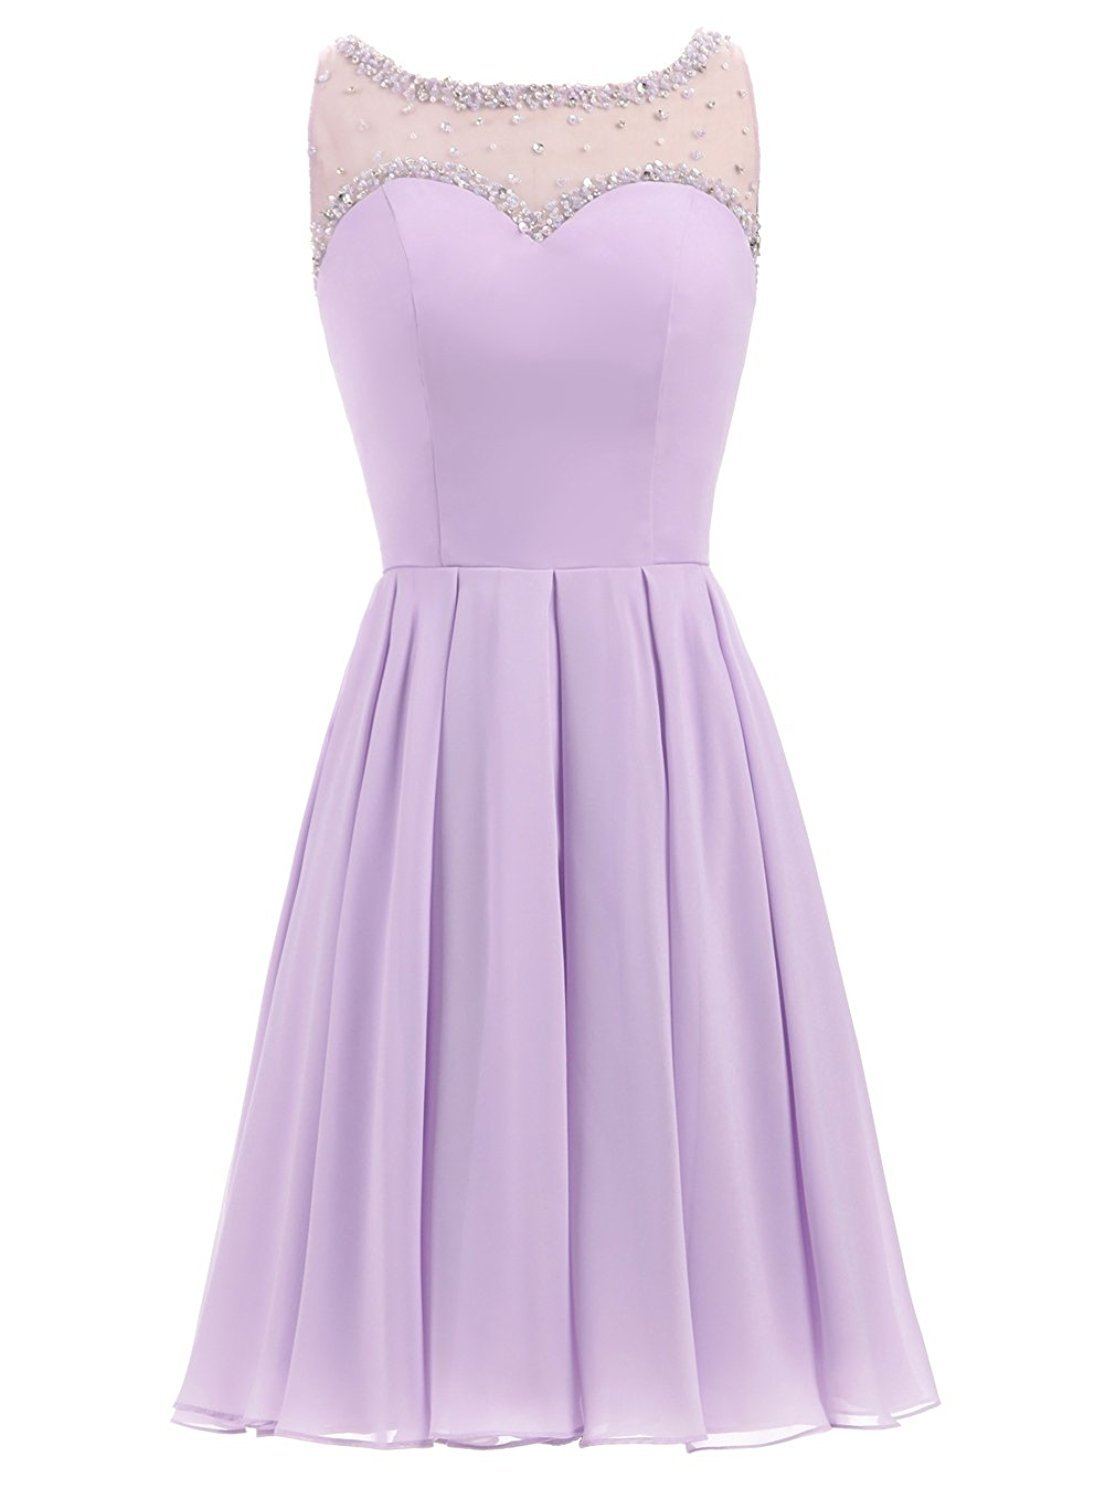 Primary image for Chiffon Short Homecoming Dresses Beaded Cocktail Party Gown with Sheer Neckline